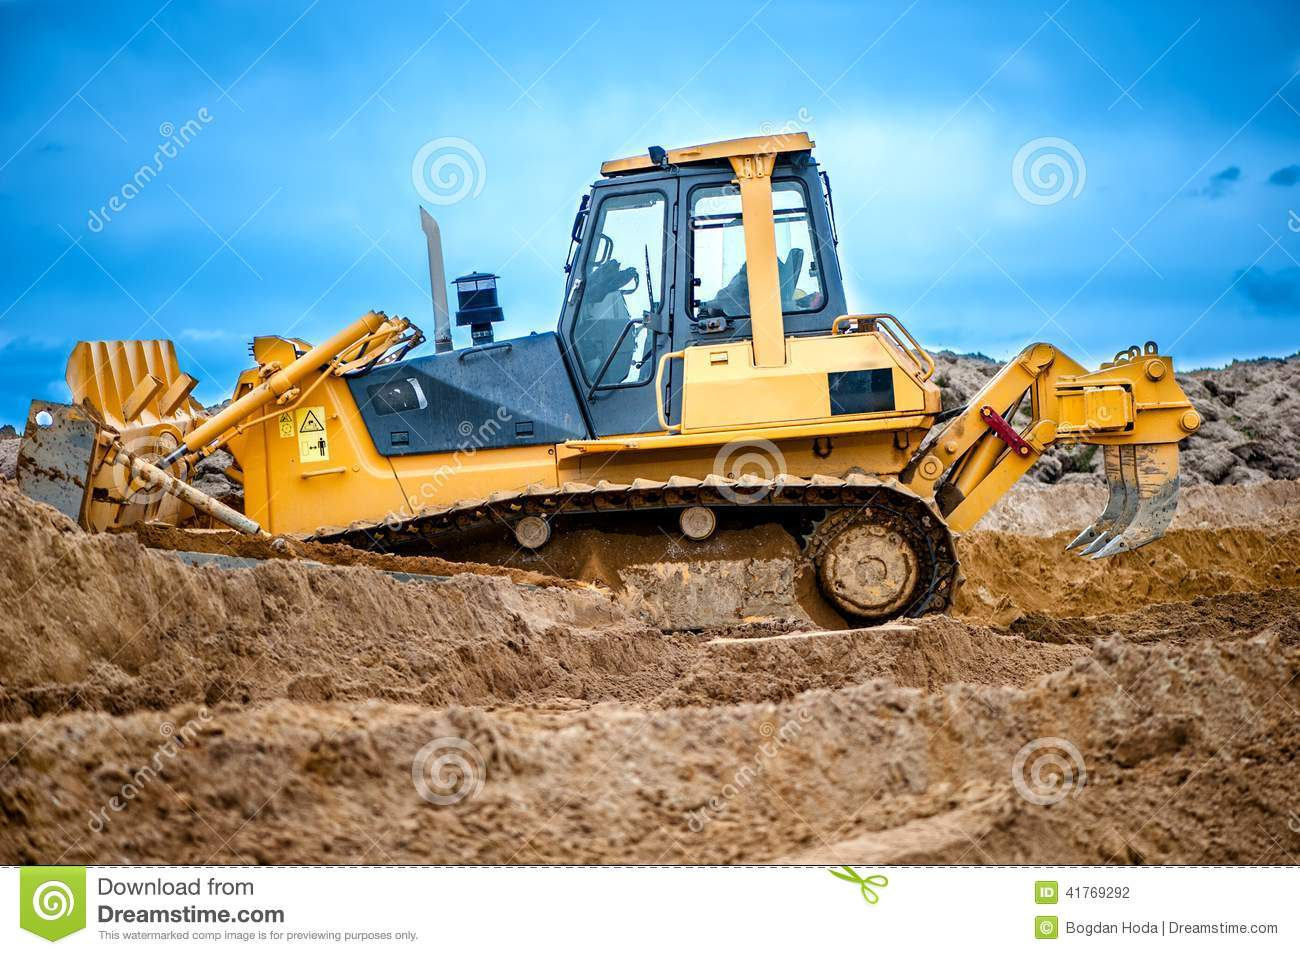 Construction Site Soil : Bulldozer or excavator working with soil on construction